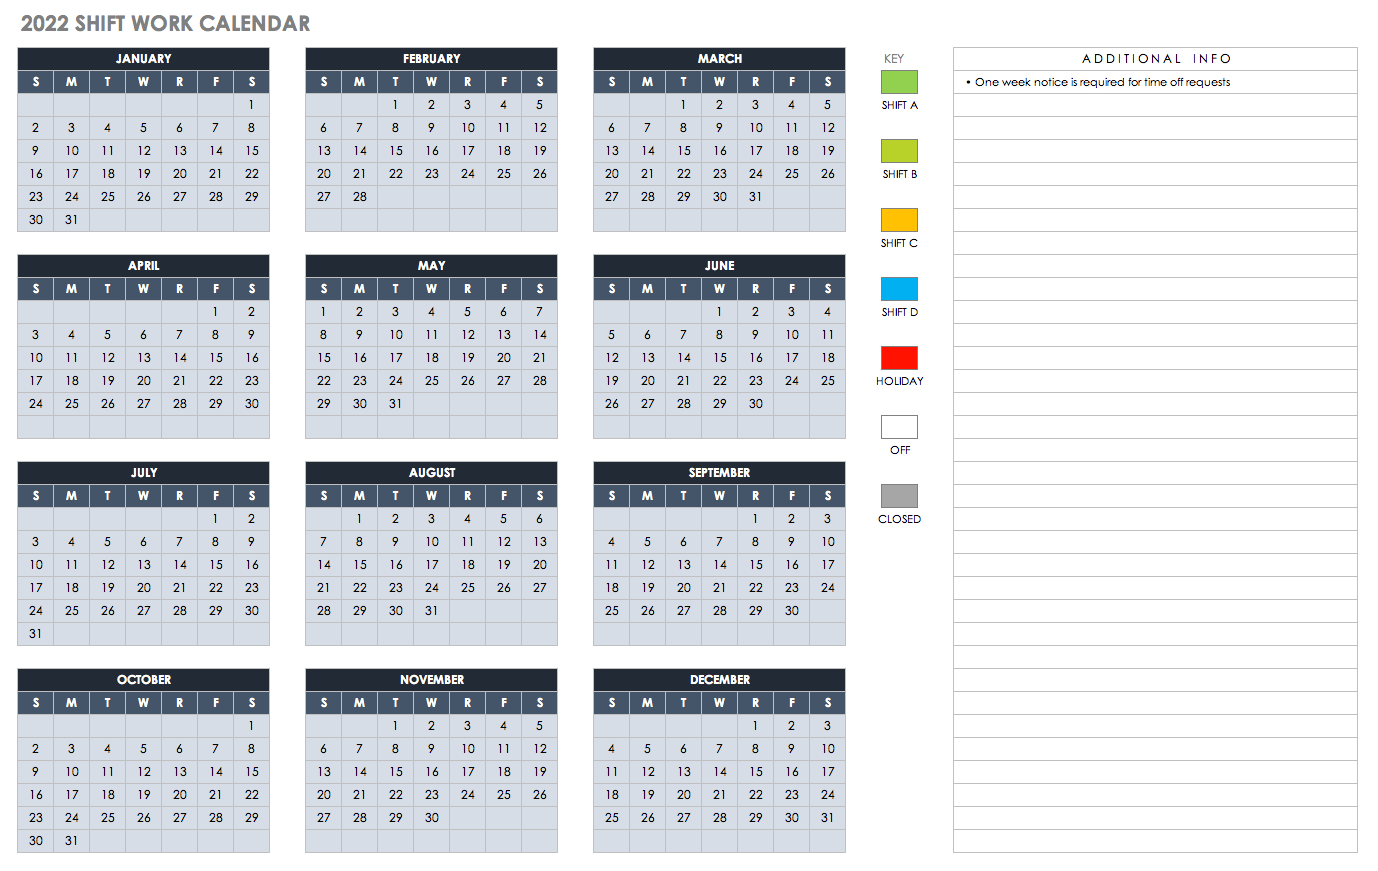 005 Impressive Free Excel Calendar Template Inspiration  2020 Monthly Download Biweekly Payroll 2018Full